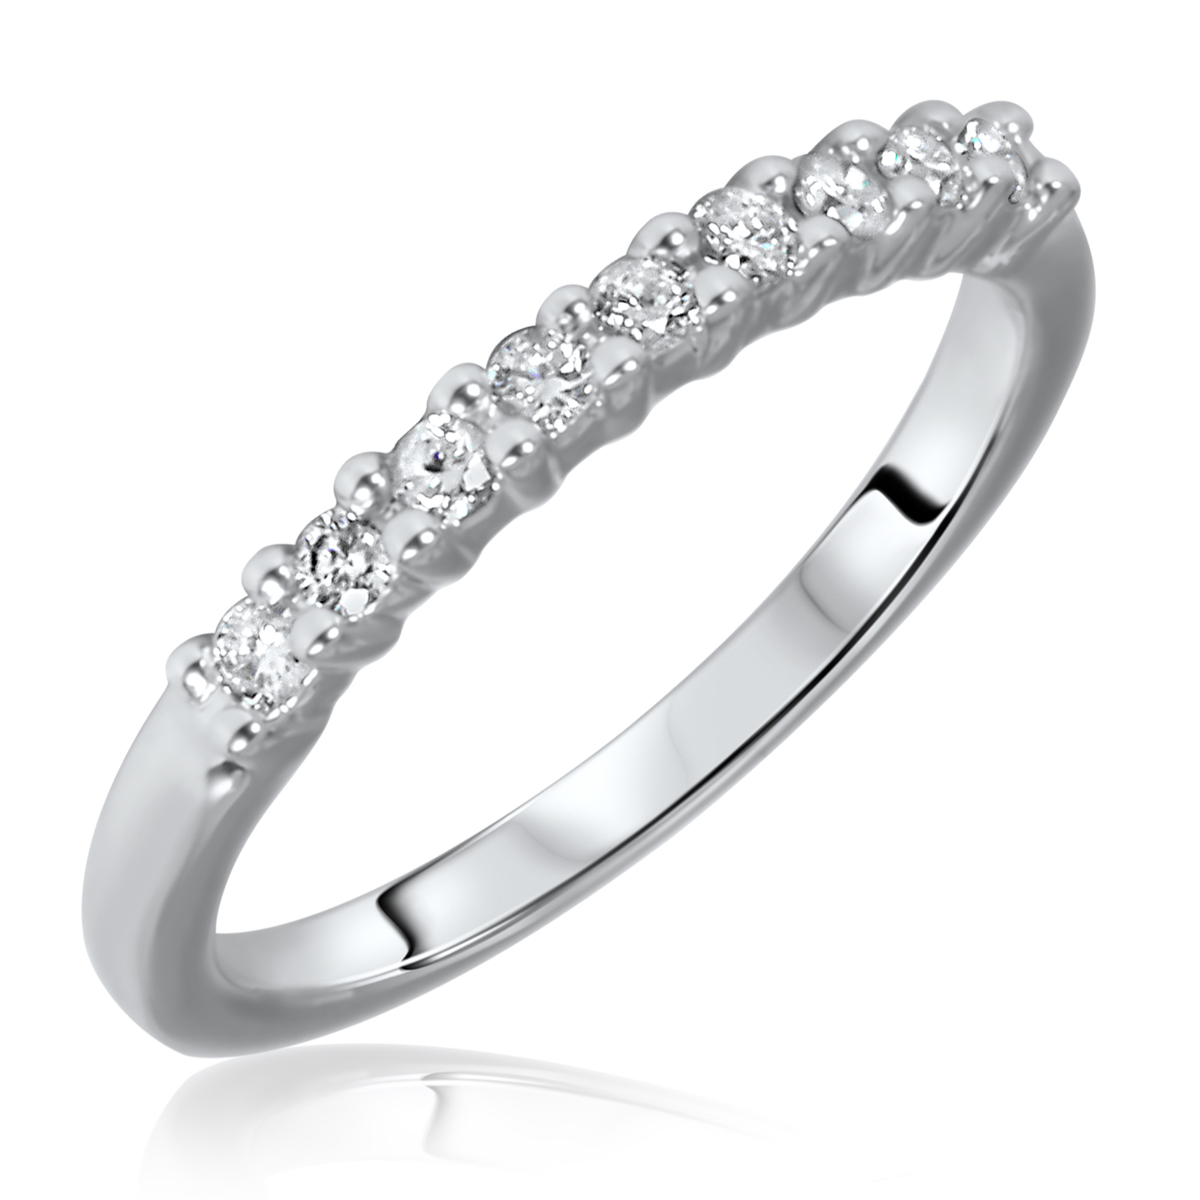 1/4 Carat T.W. Round Cut 9 Stone Diamond Anniversary Ladies Band 14K White Gold-